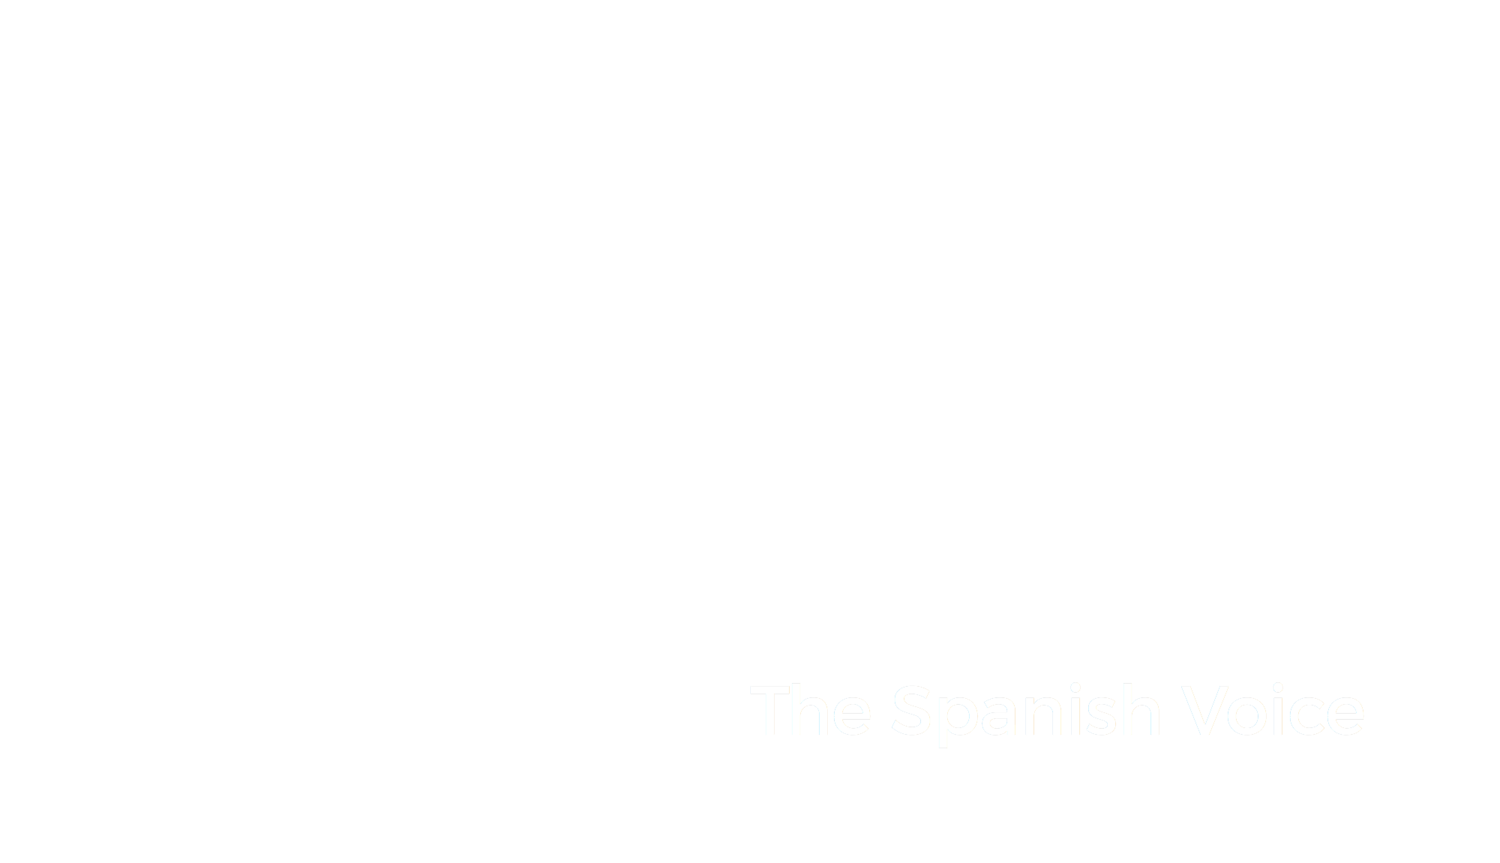 Chema Bazan, the Spanish Voice